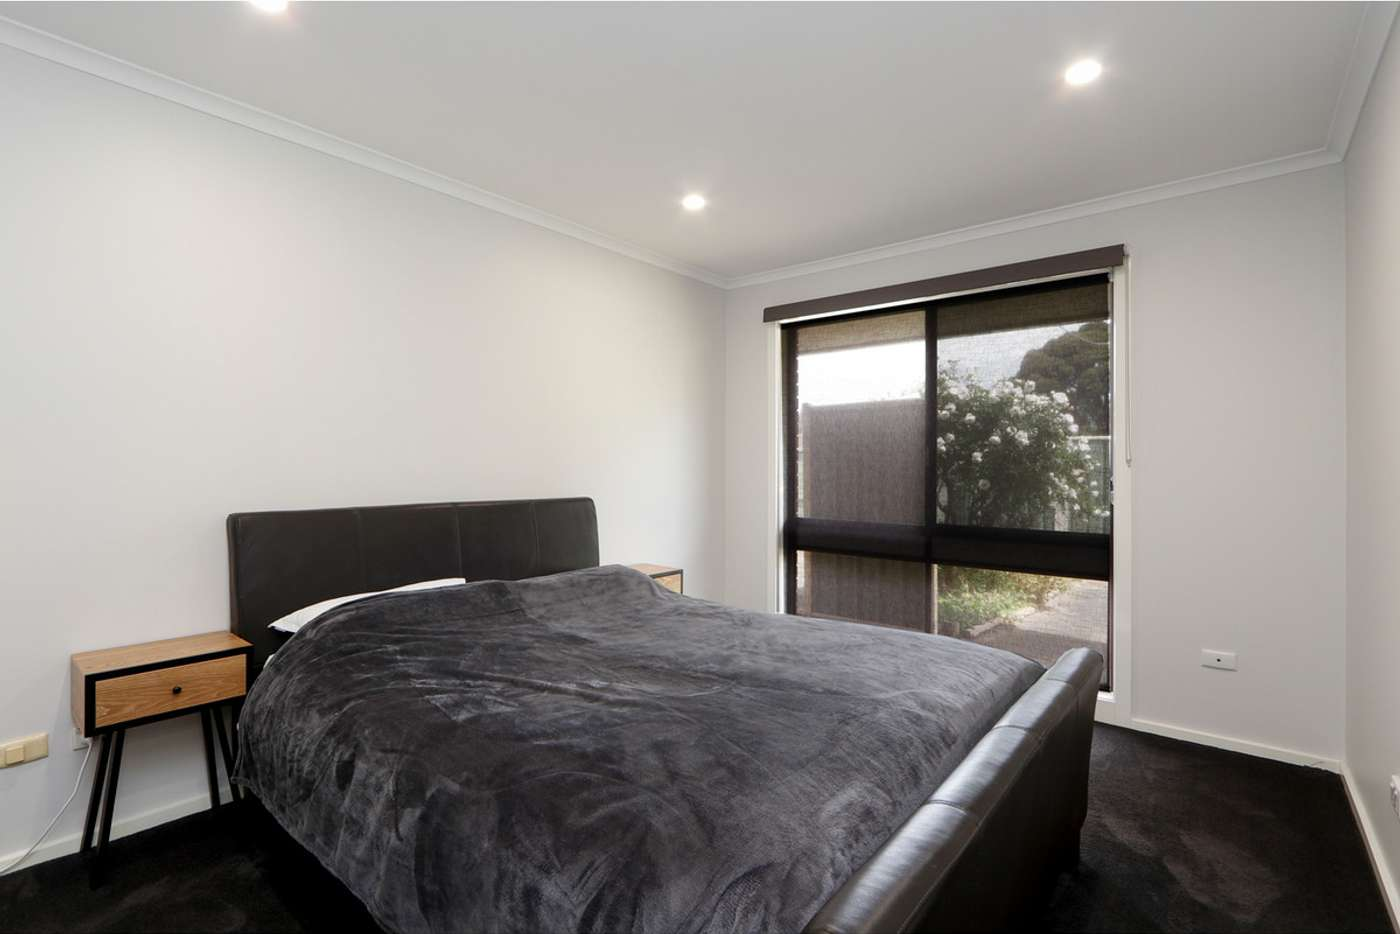 Fifth view of Homely house listing, 53 Inglis Street, Sale VIC 3850